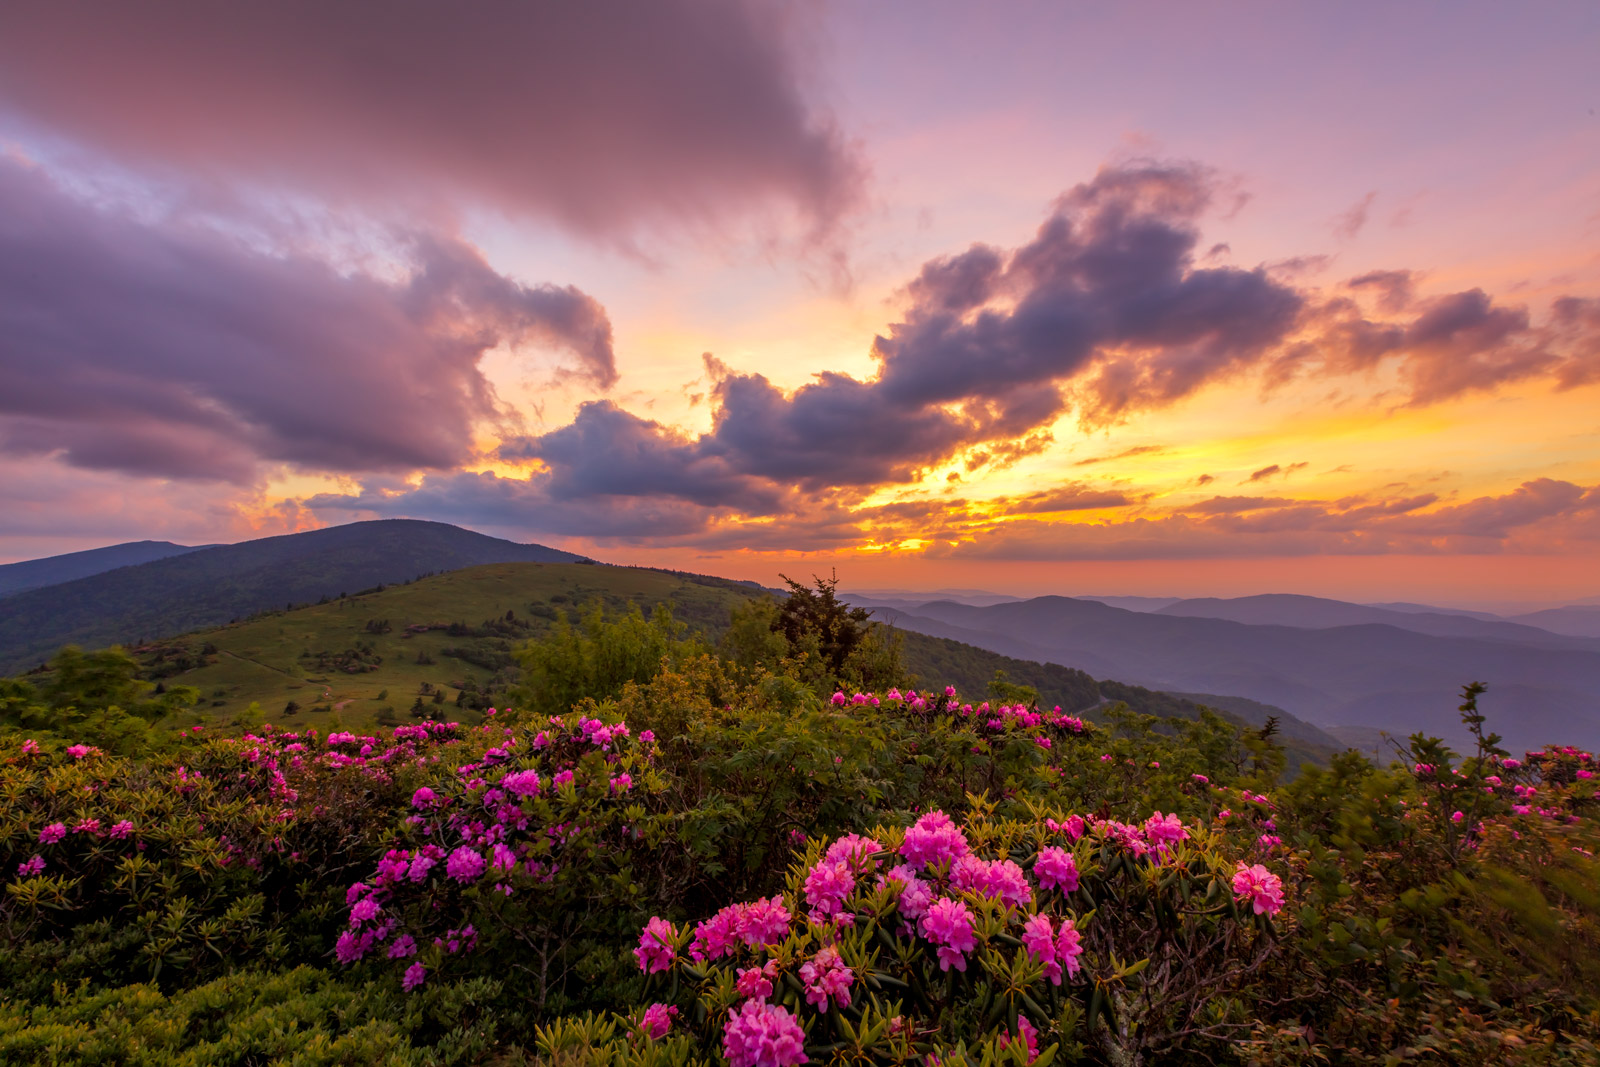 North Carolina, Roan, Mountain, Rhododendron, sunset